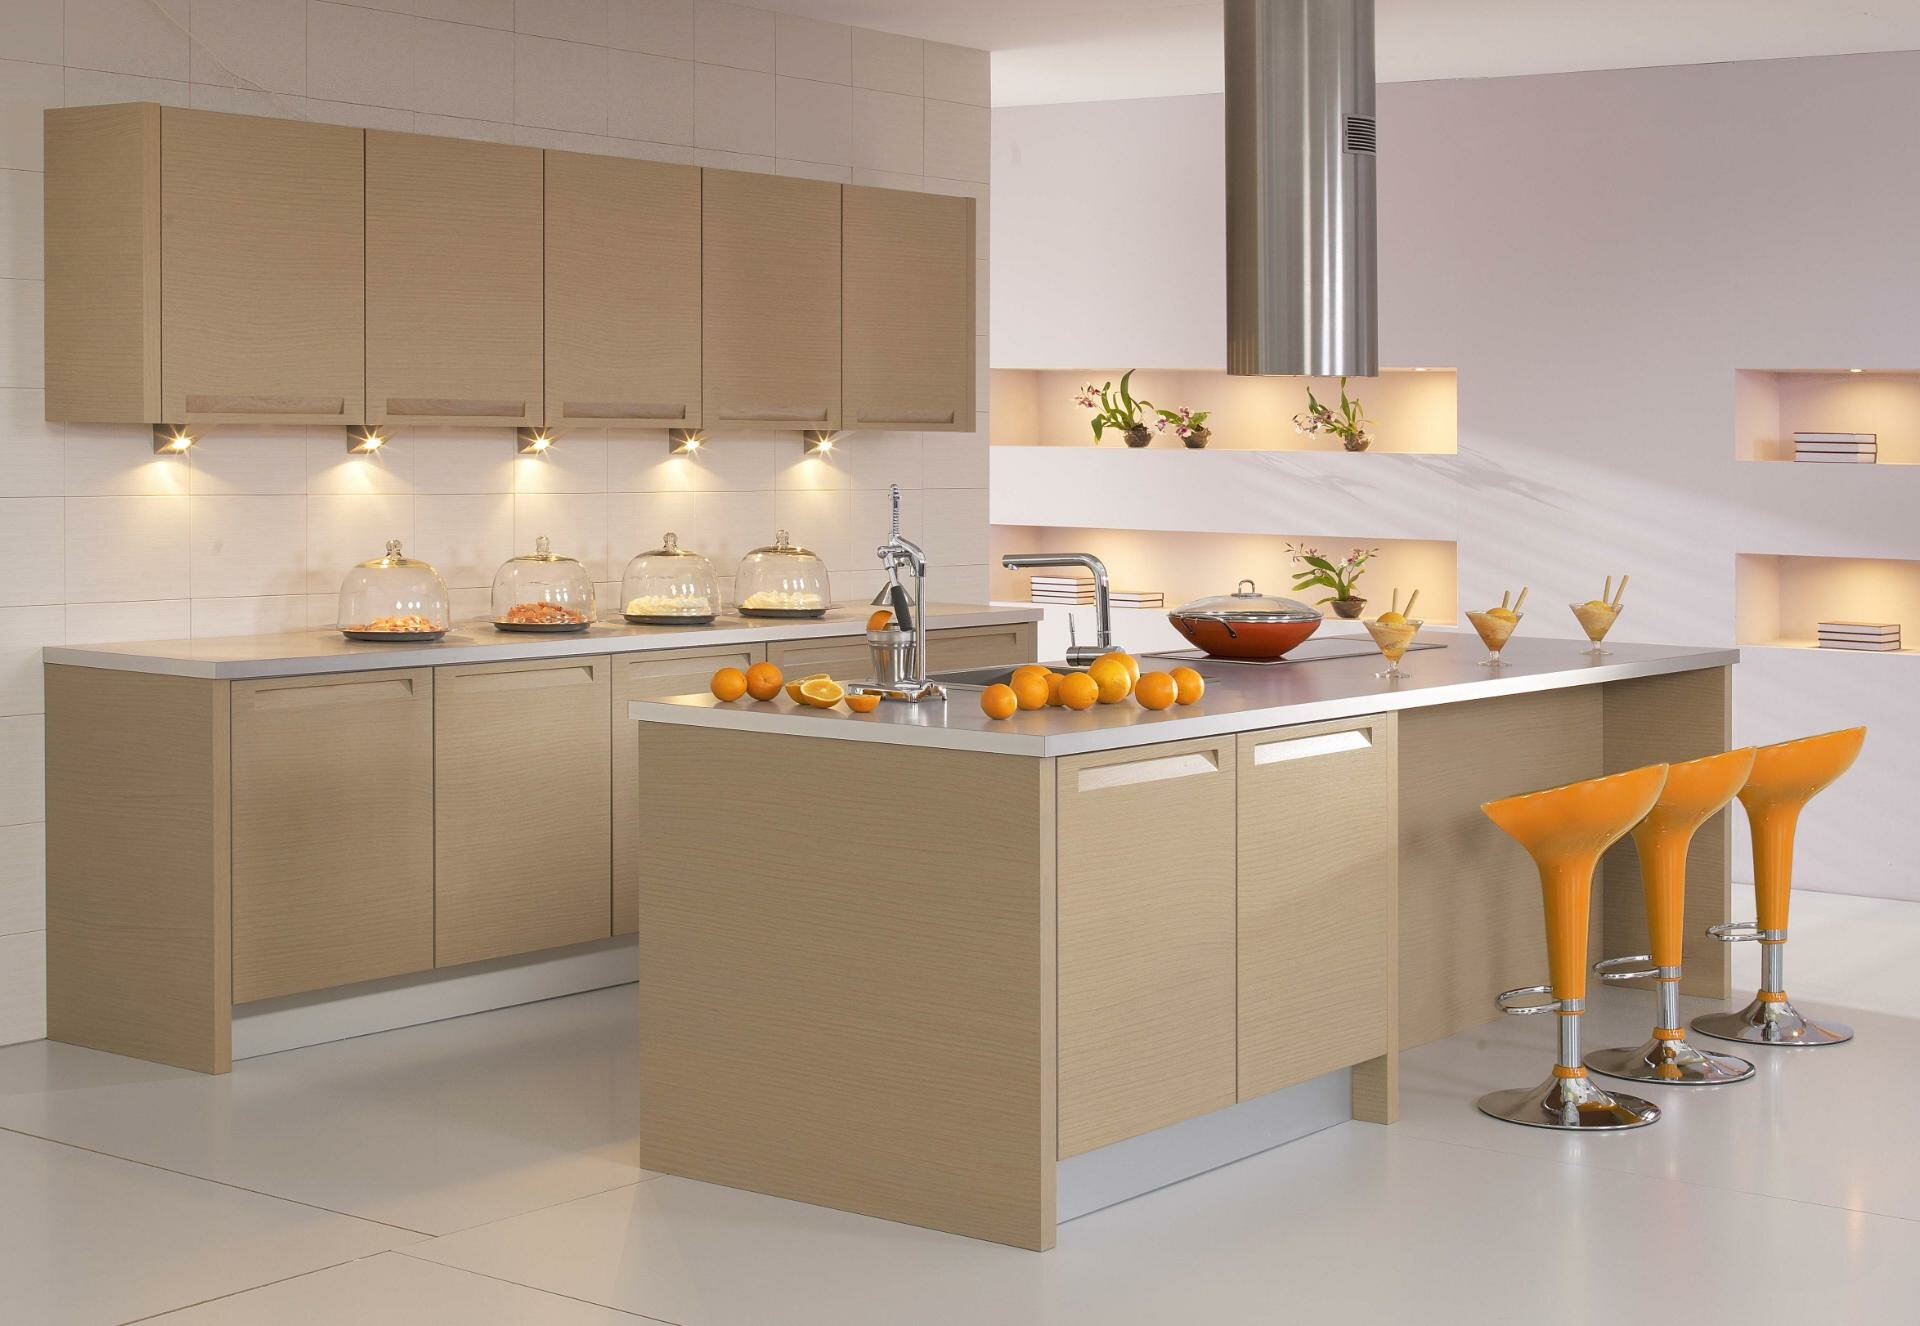 15 great kitchen cabinets that will inspire you for Europa kitchen cabinets